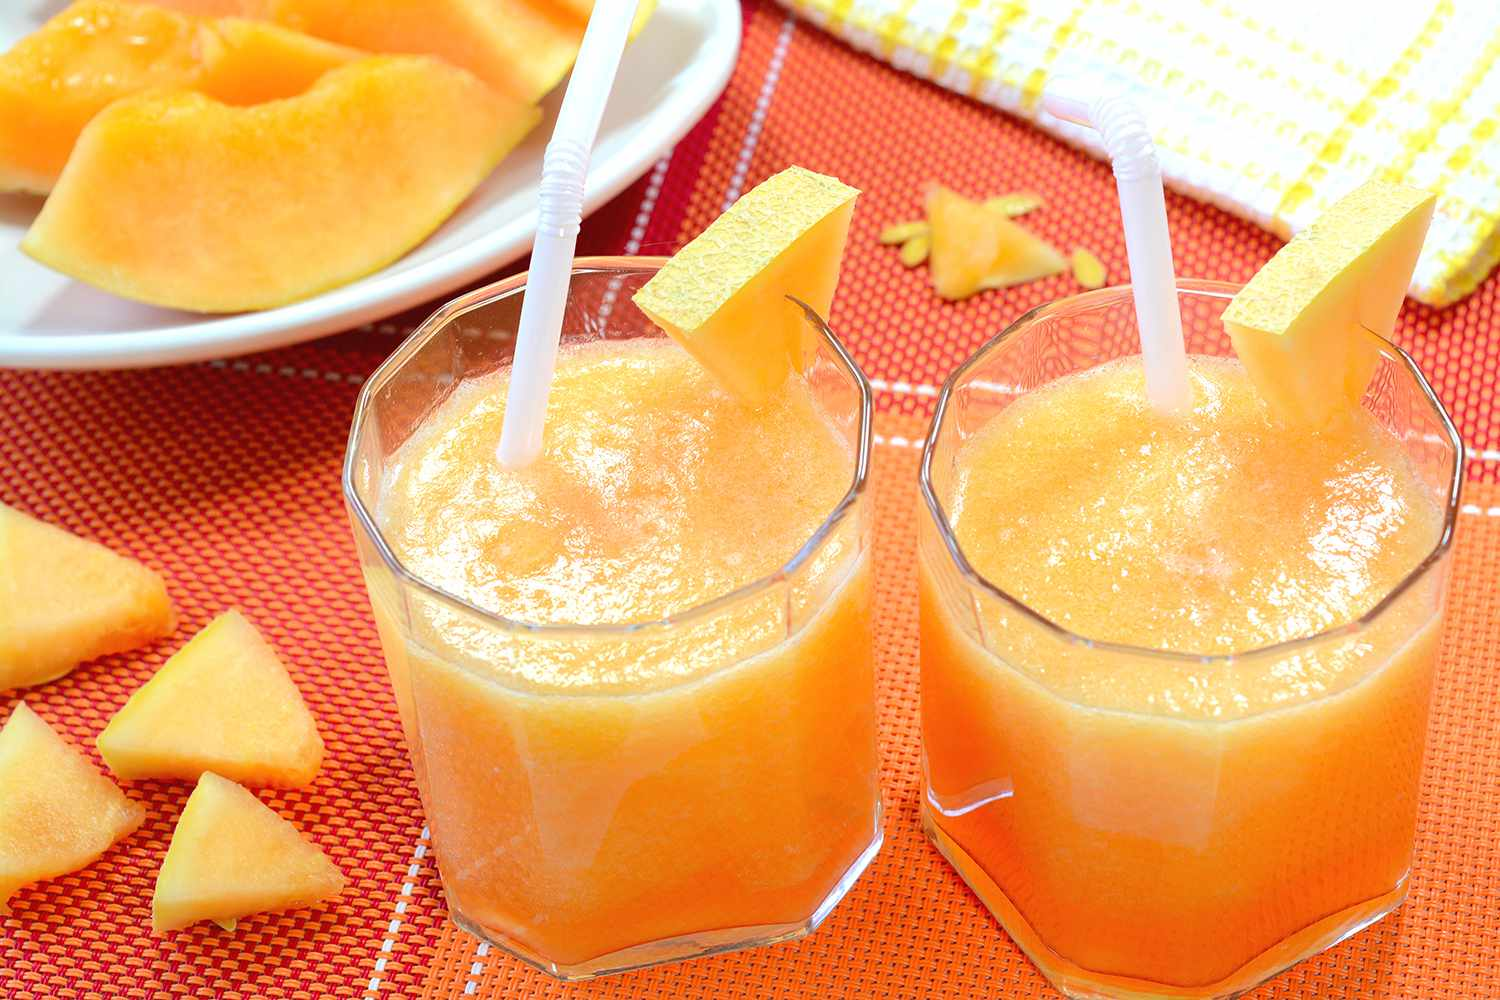 Freshly prepared cantaloupe juice also known as muskmelon juice.